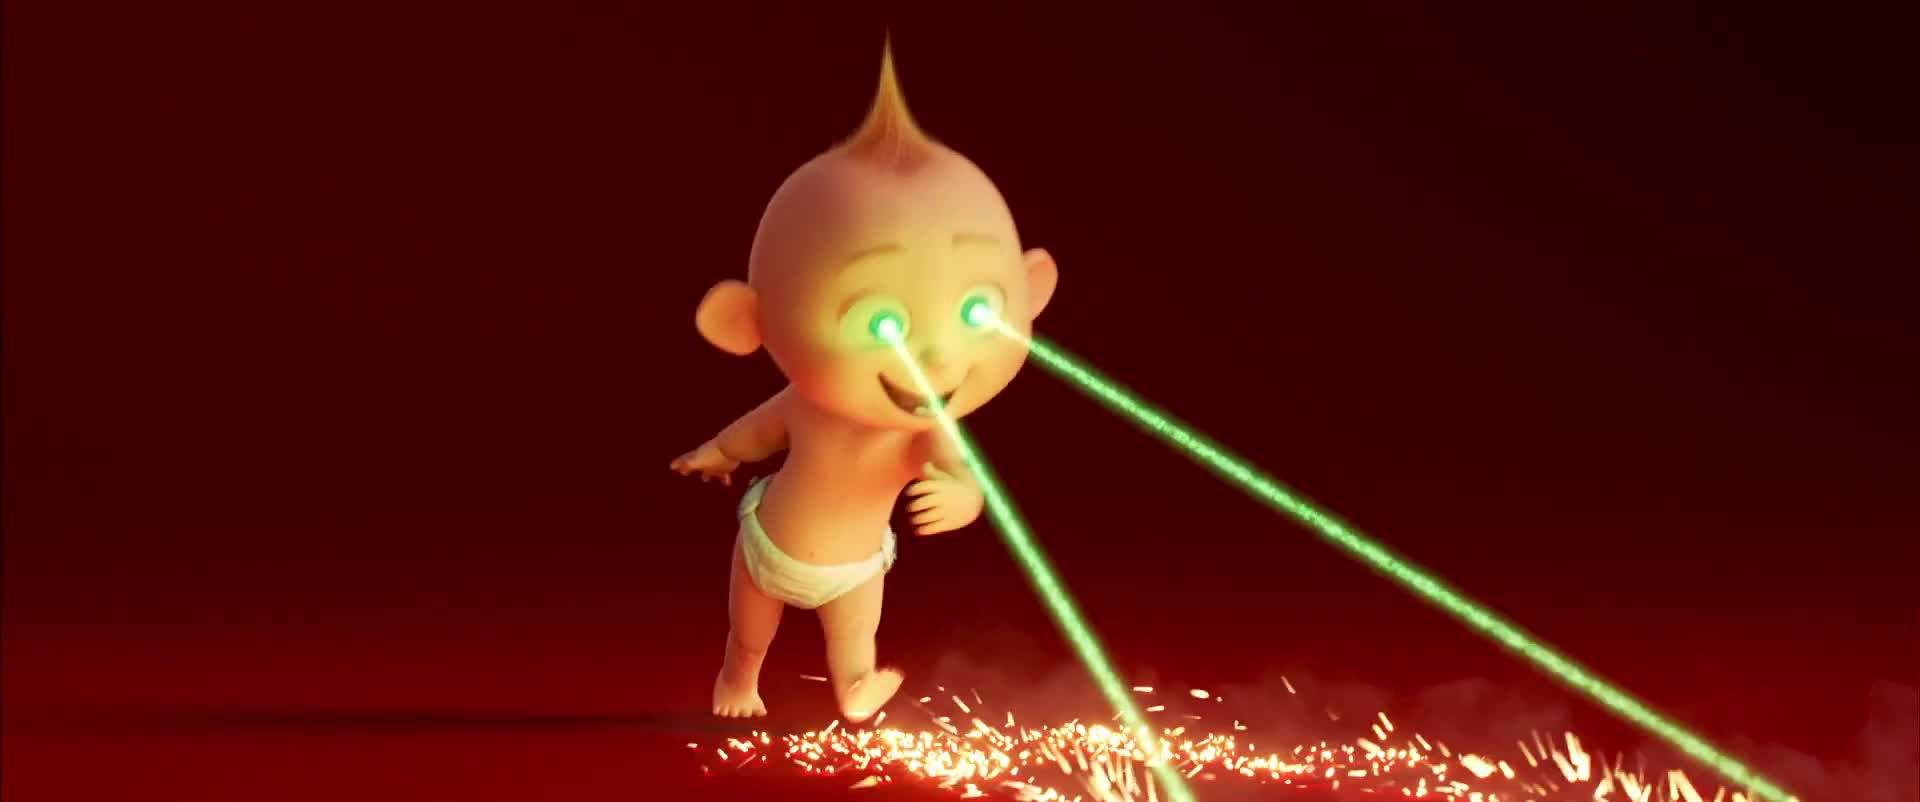 The Incredibles 2 Wait A Second Jack Jack Has Powers By C J Hawkings Wonderpopculture Medium